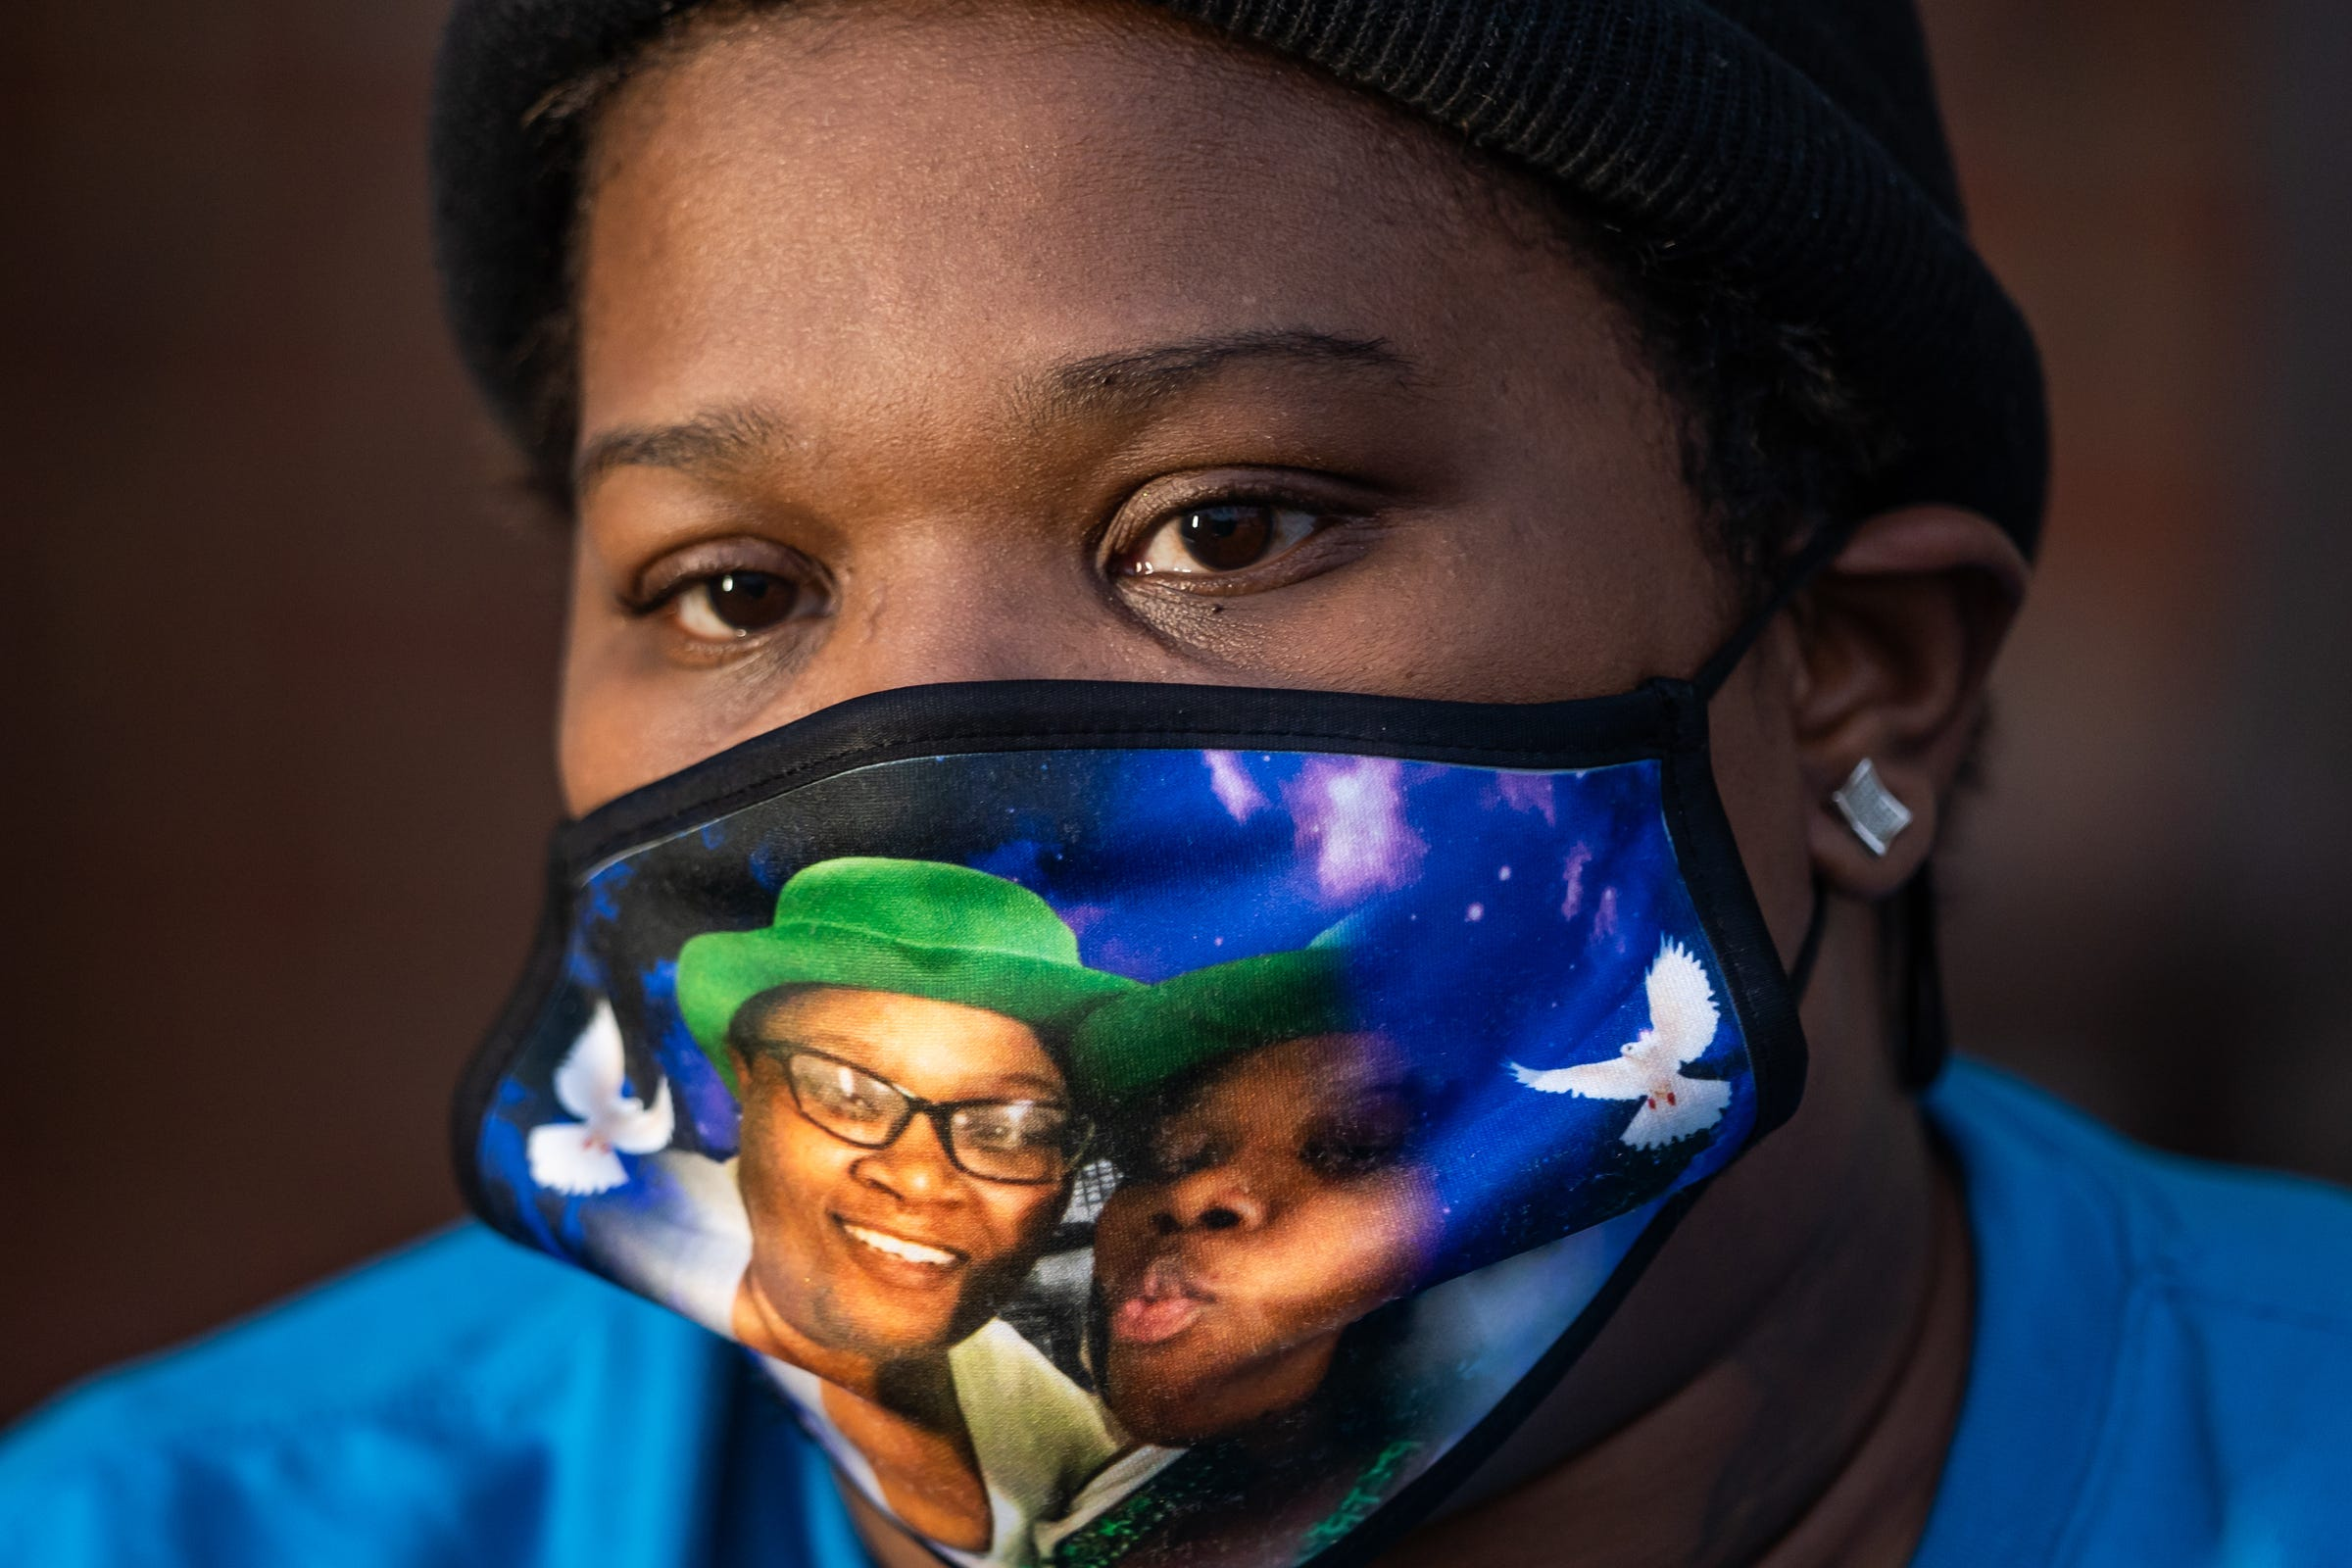 Juliette Gilbert, 33, of Detroit, speaks about losing her mother Monique Baldridge, 52, to COVID-19 while sitting outside of her home on Detroit's east side on Friday, Dec. 11, 2020, as she wears a mask of her and her mother from a St. Patrick's Day outing last year. Baldridge died on March 27, 2020.